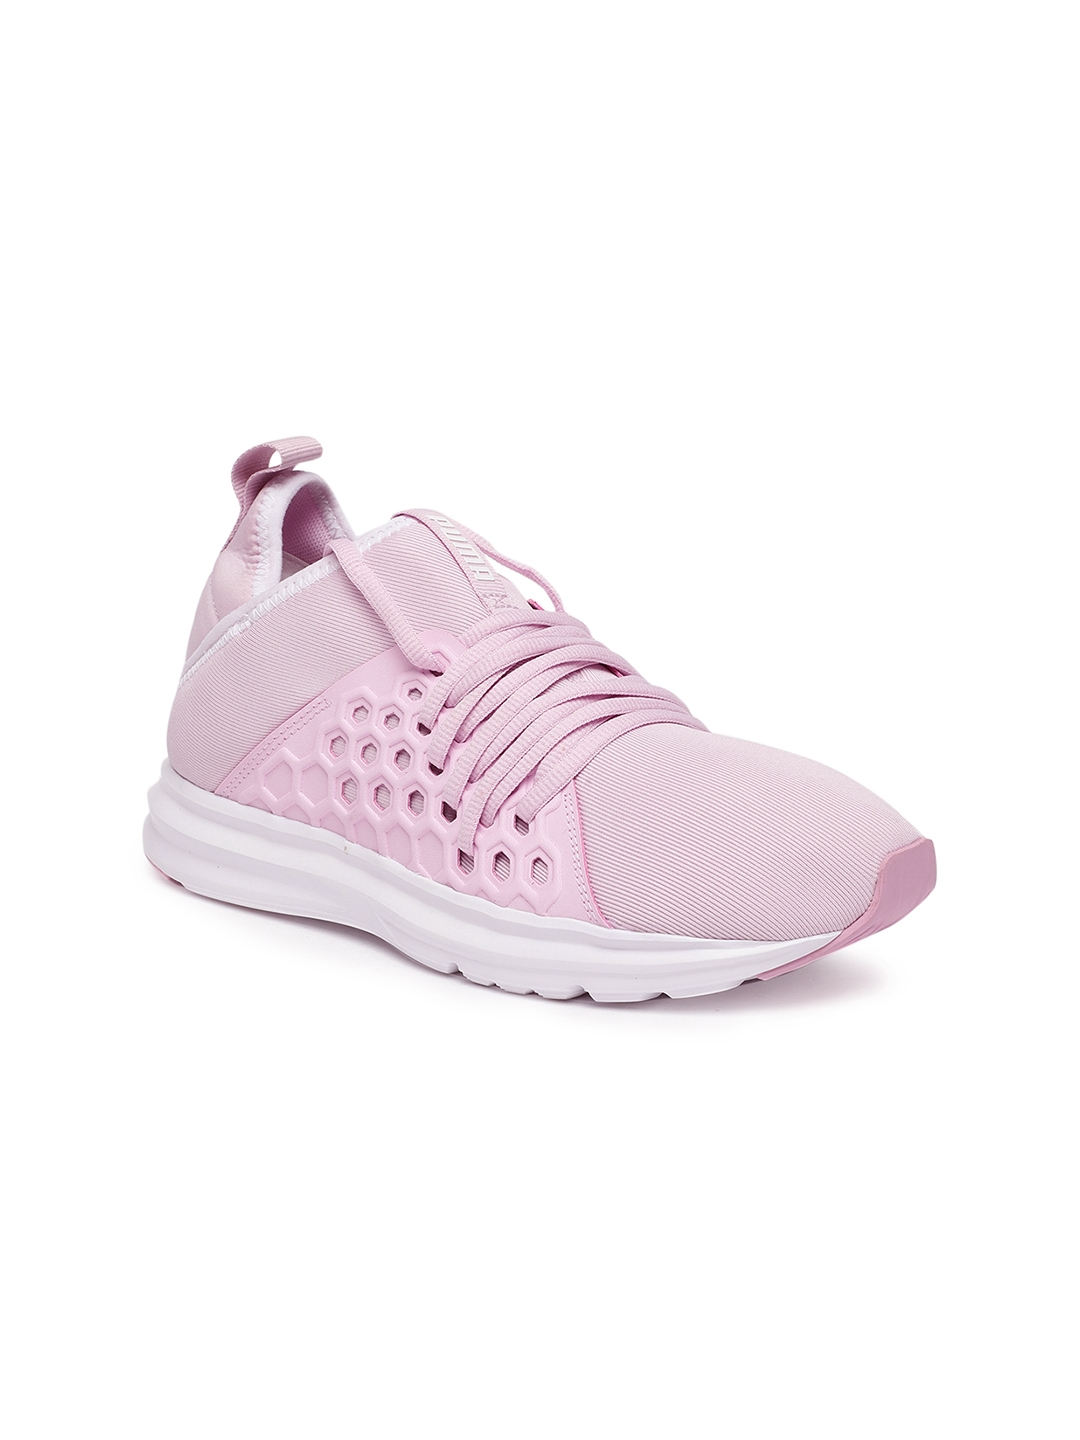 8bcc5d899ec0 Buy Puma Women Pink Enzo NF Mid Wn s Training Shoes - Sports Shoes ...